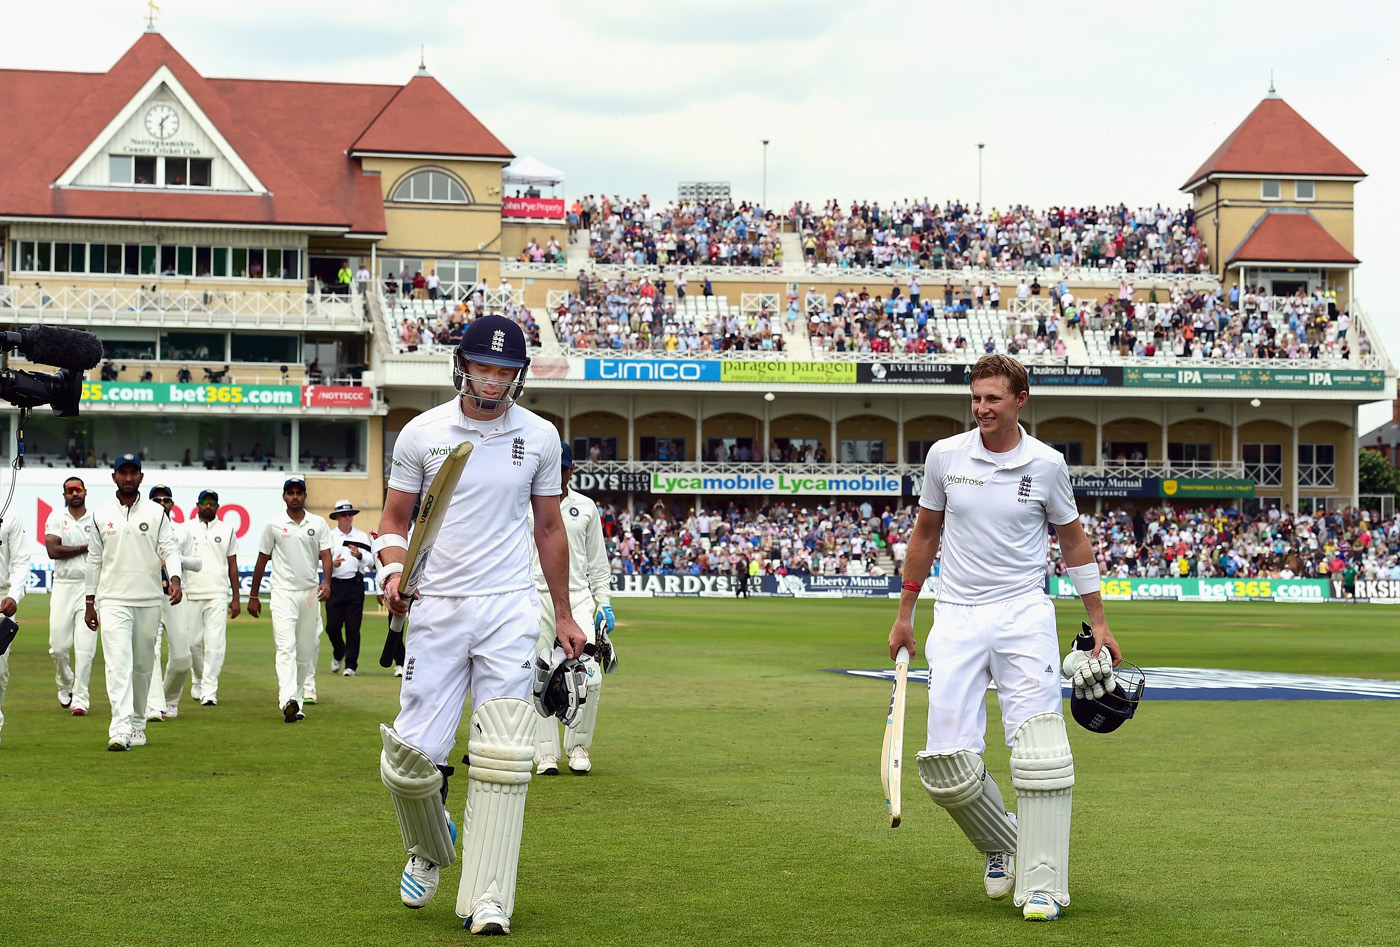 James Anderson and Joe Root walk off for a well-earned lunch